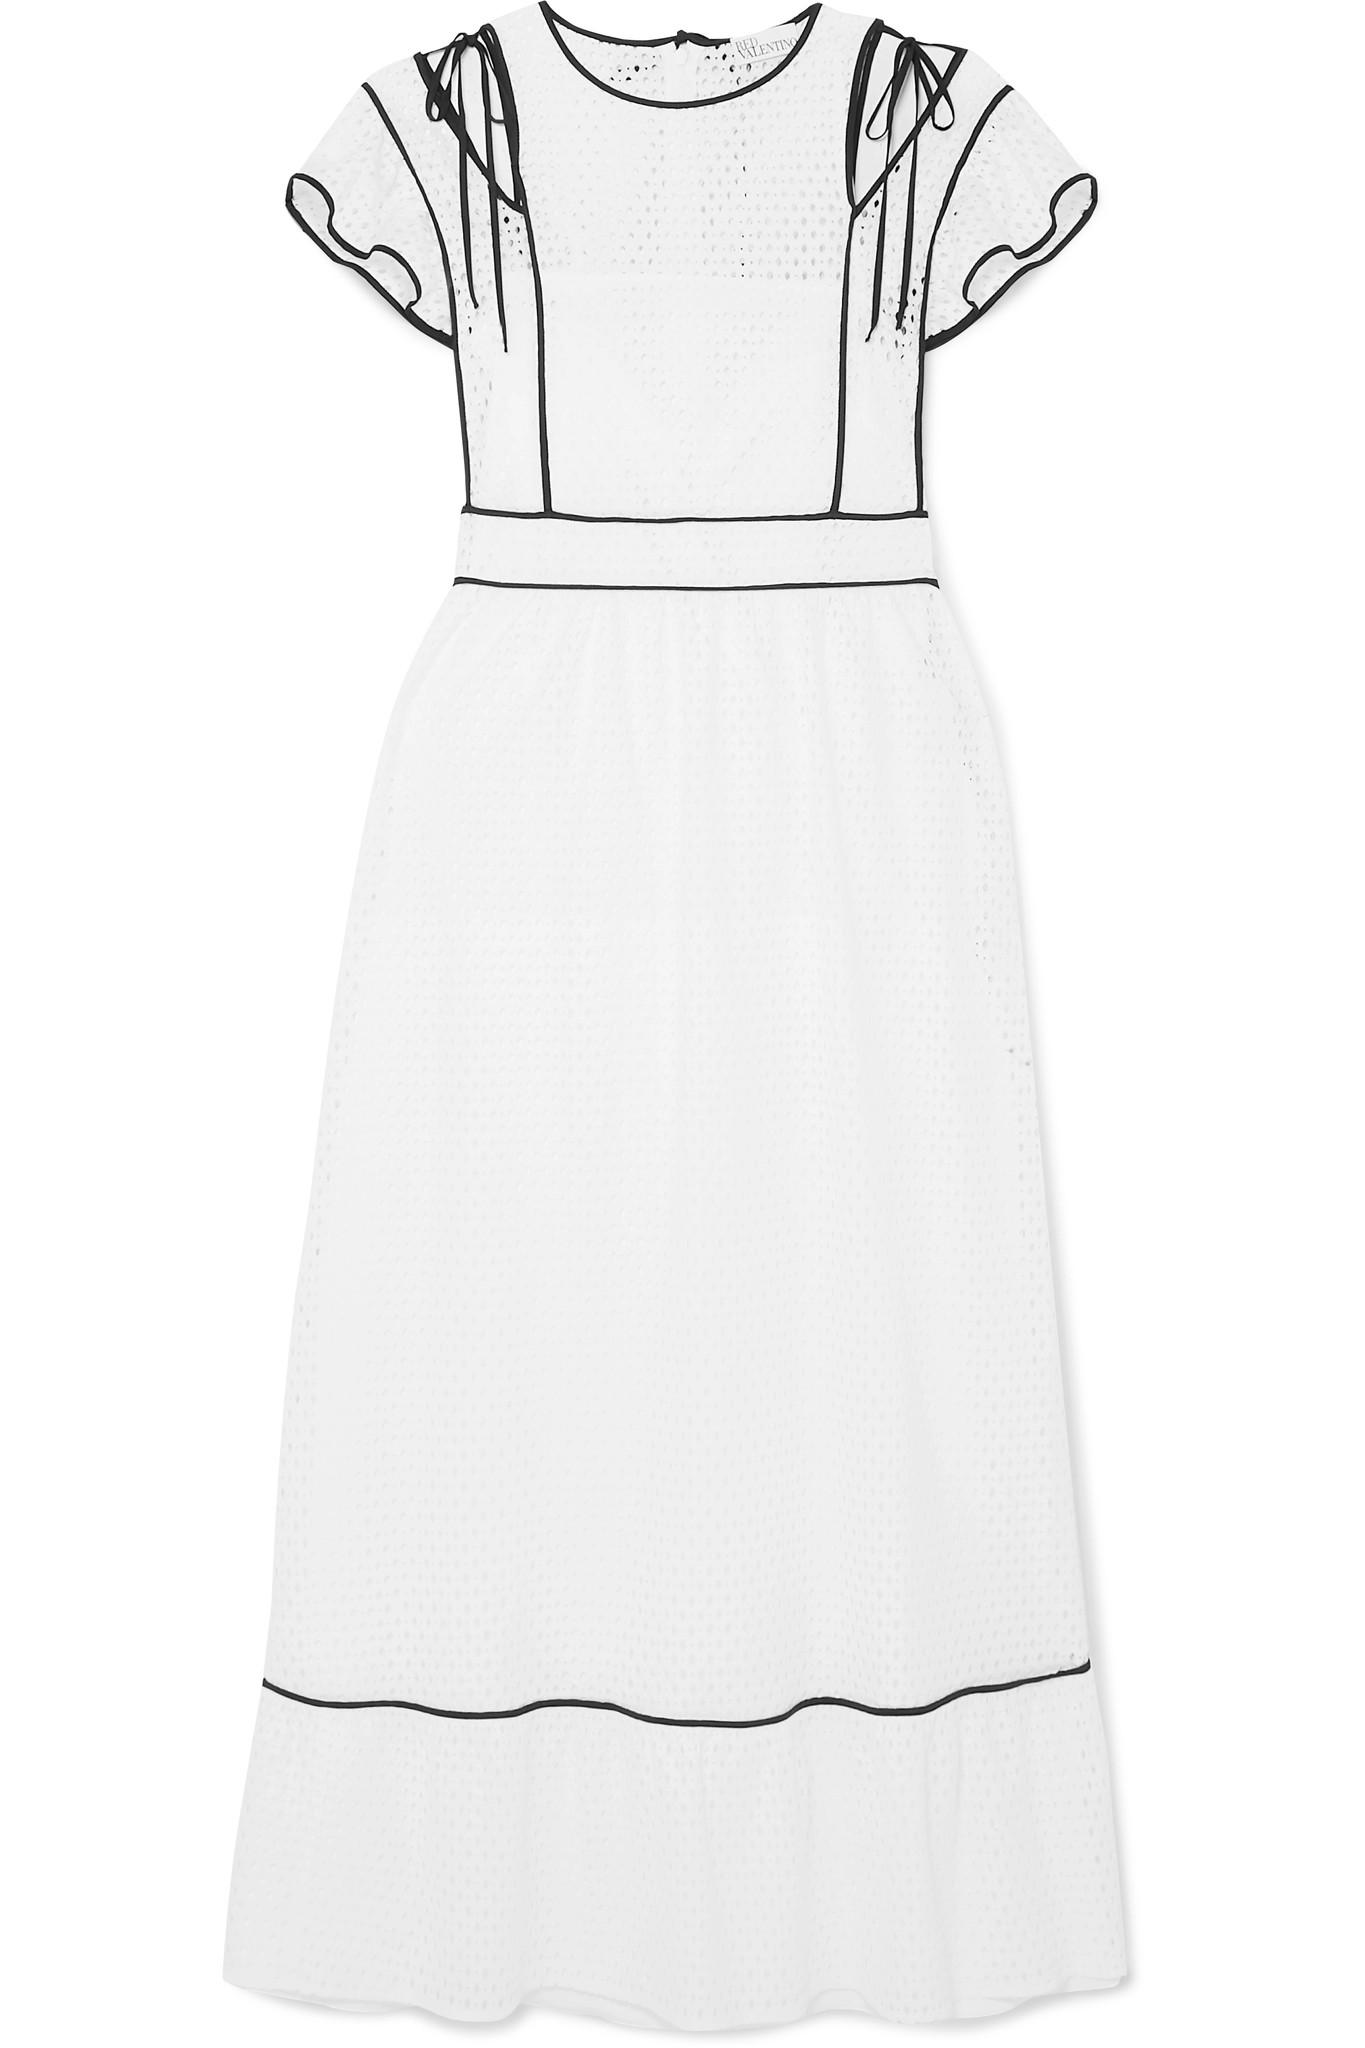 b752837cbeb RED Valentino. Women s White Cutout Ruffled Broderie Anglaise Woven Dress